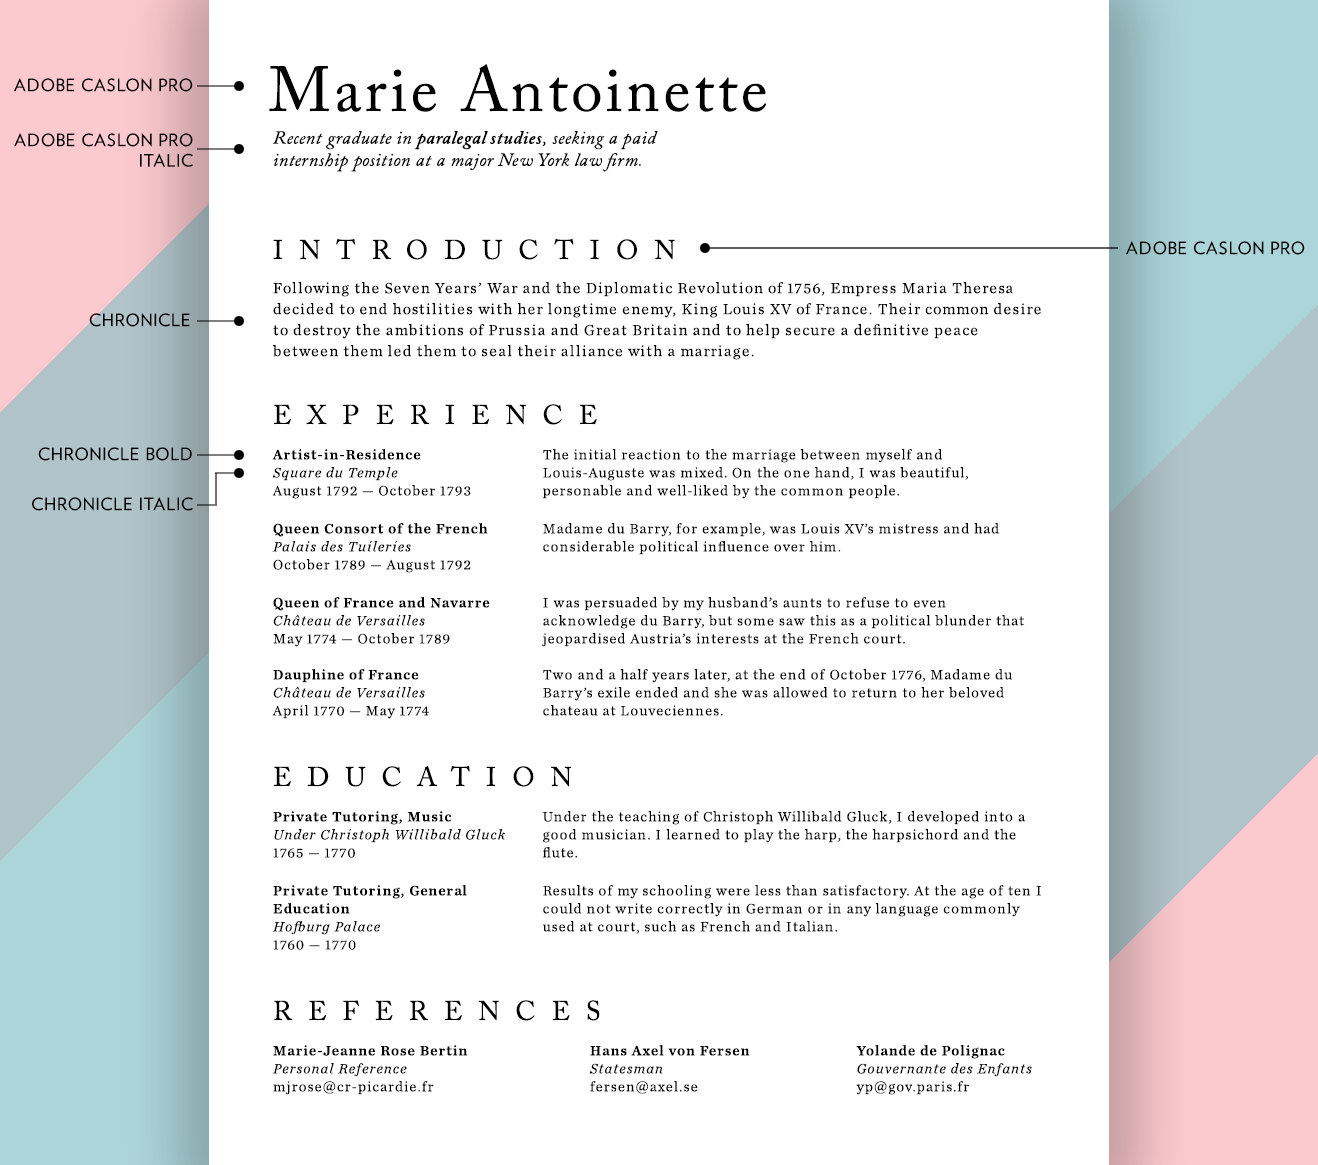 Delightful Geometric Sans Serif Fonts To Fonts For Resumes